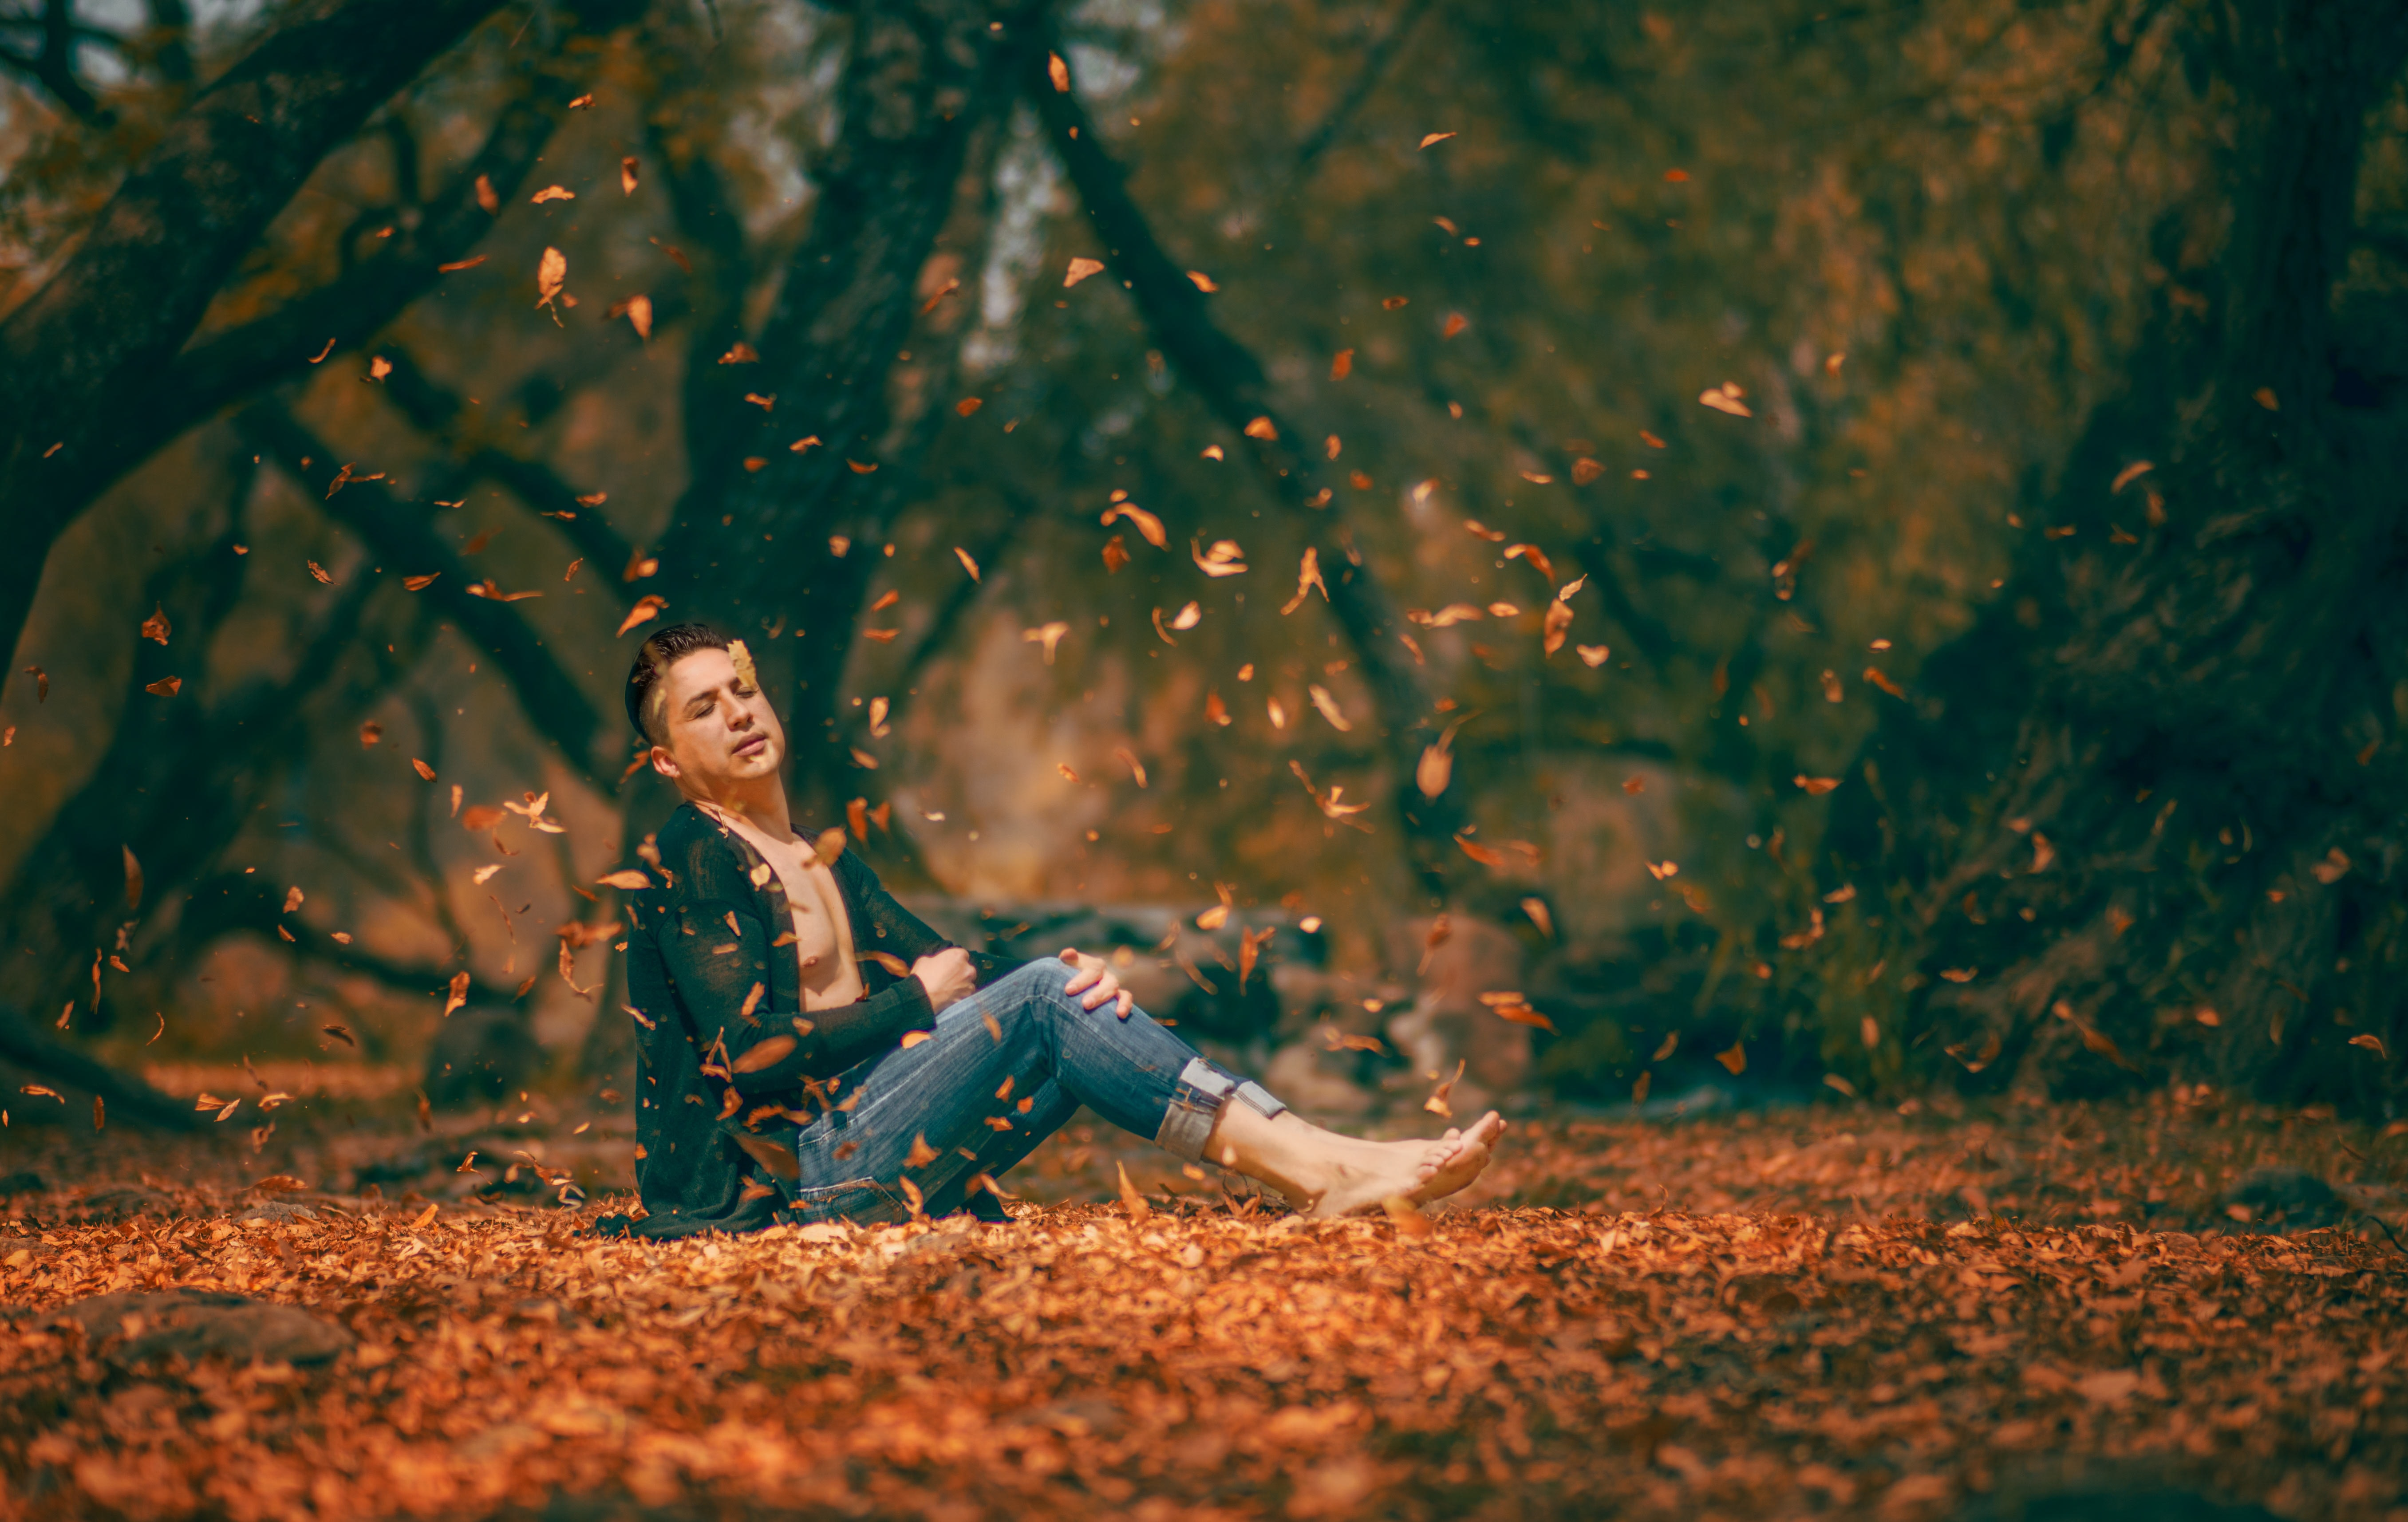 shallow focus photography of man sitting on brown dried leaves surrounded by trees during daytime